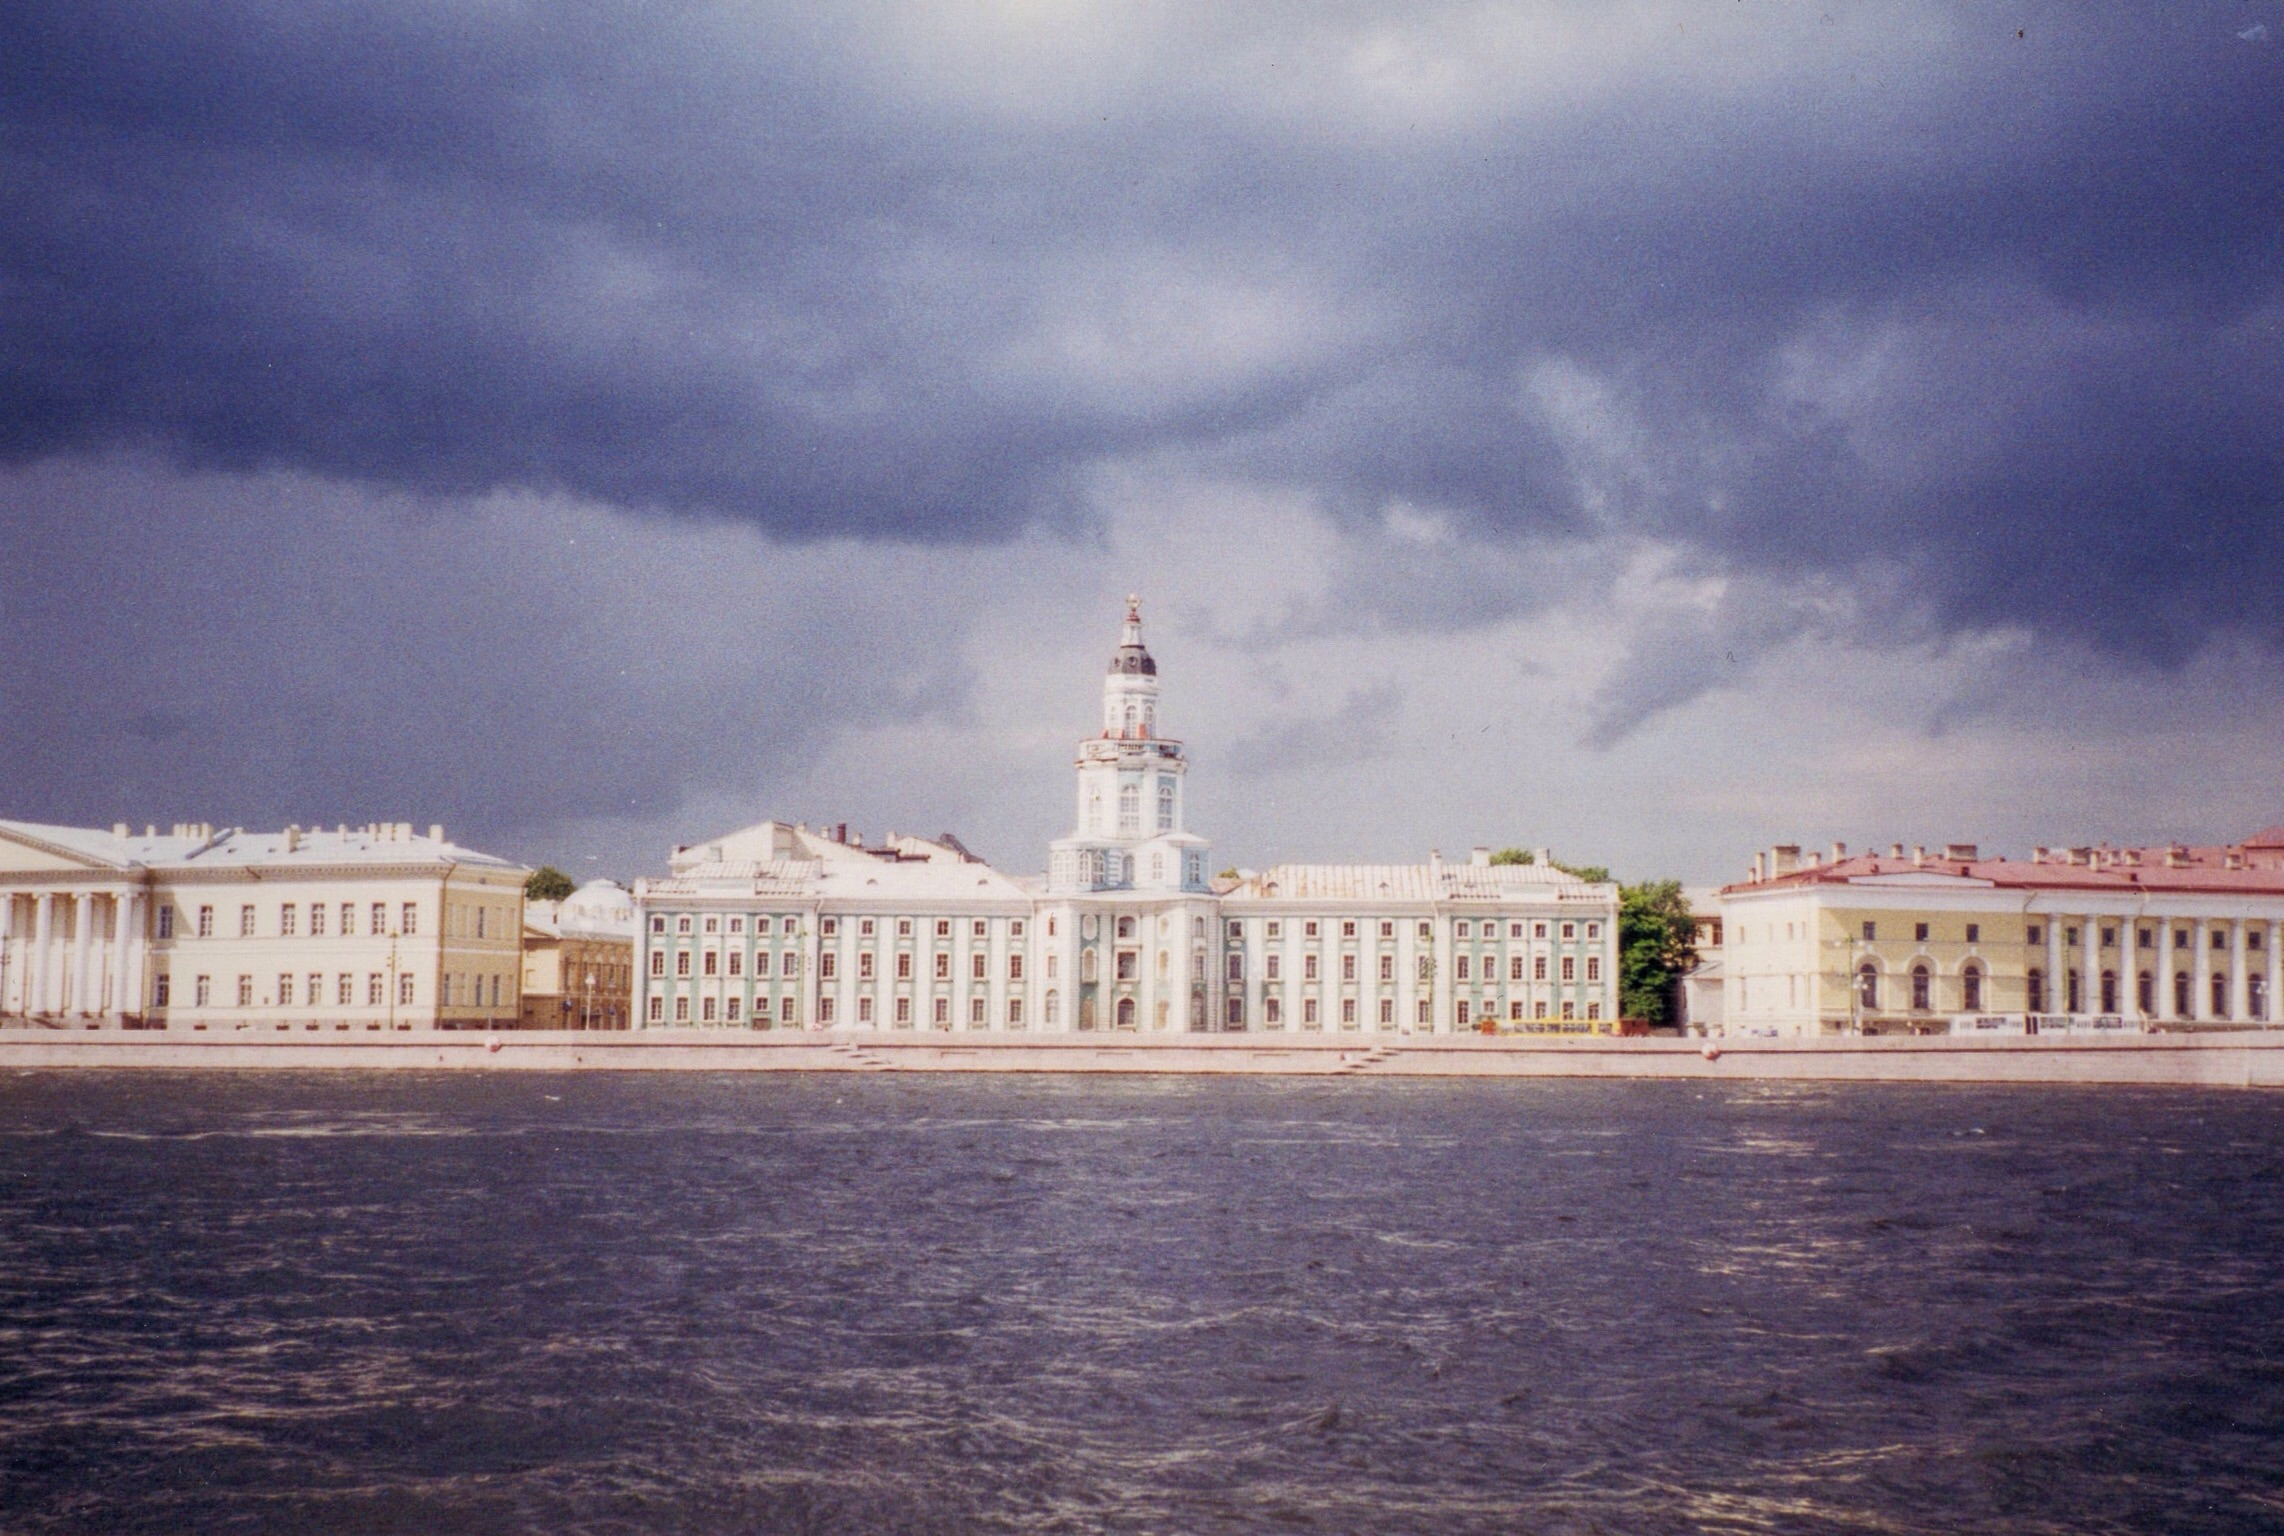 Across from the Hermitage, the Kunstkamera, the first museum in Russia.